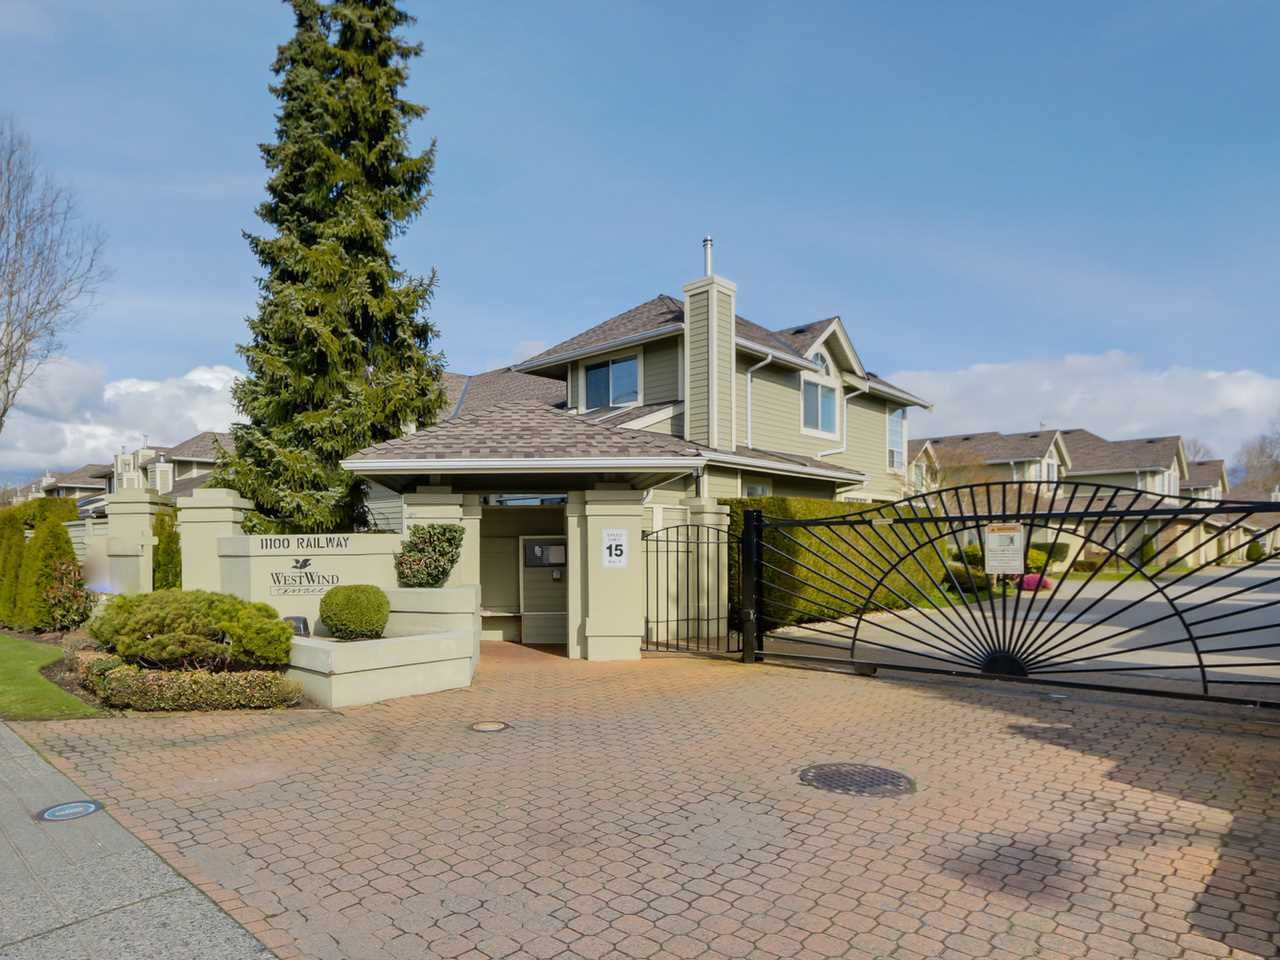 Main Photo: 30 11100 RAILWAY AVENUE in : Westwind Townhouse for sale : MLS®# R2041485